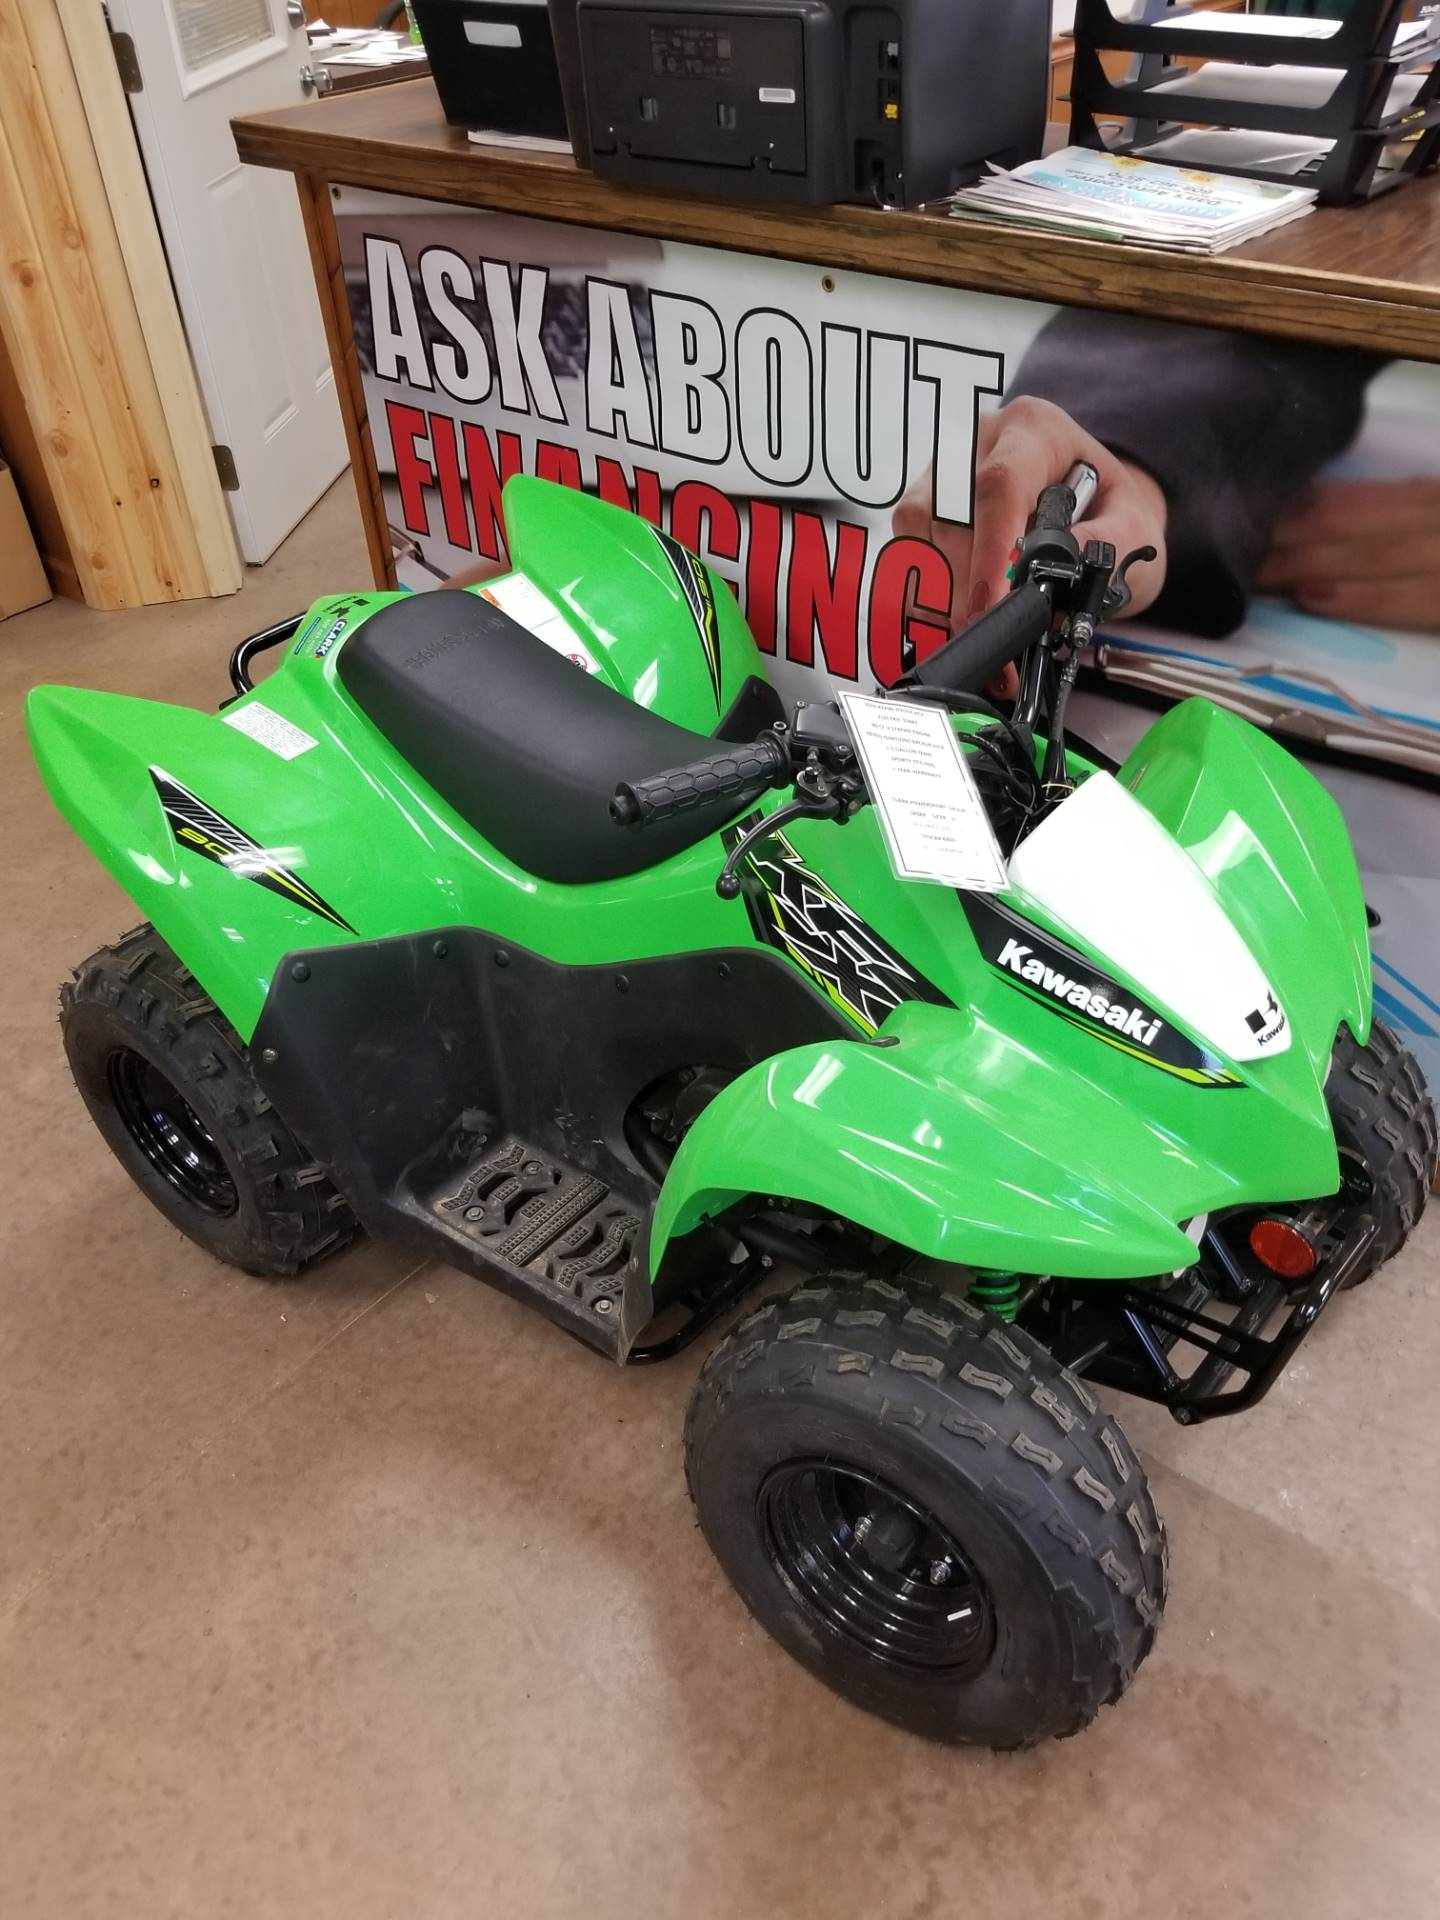 2019 Kawasaki KFX 90 in Hillsboro, Wisconsin - Photo 1